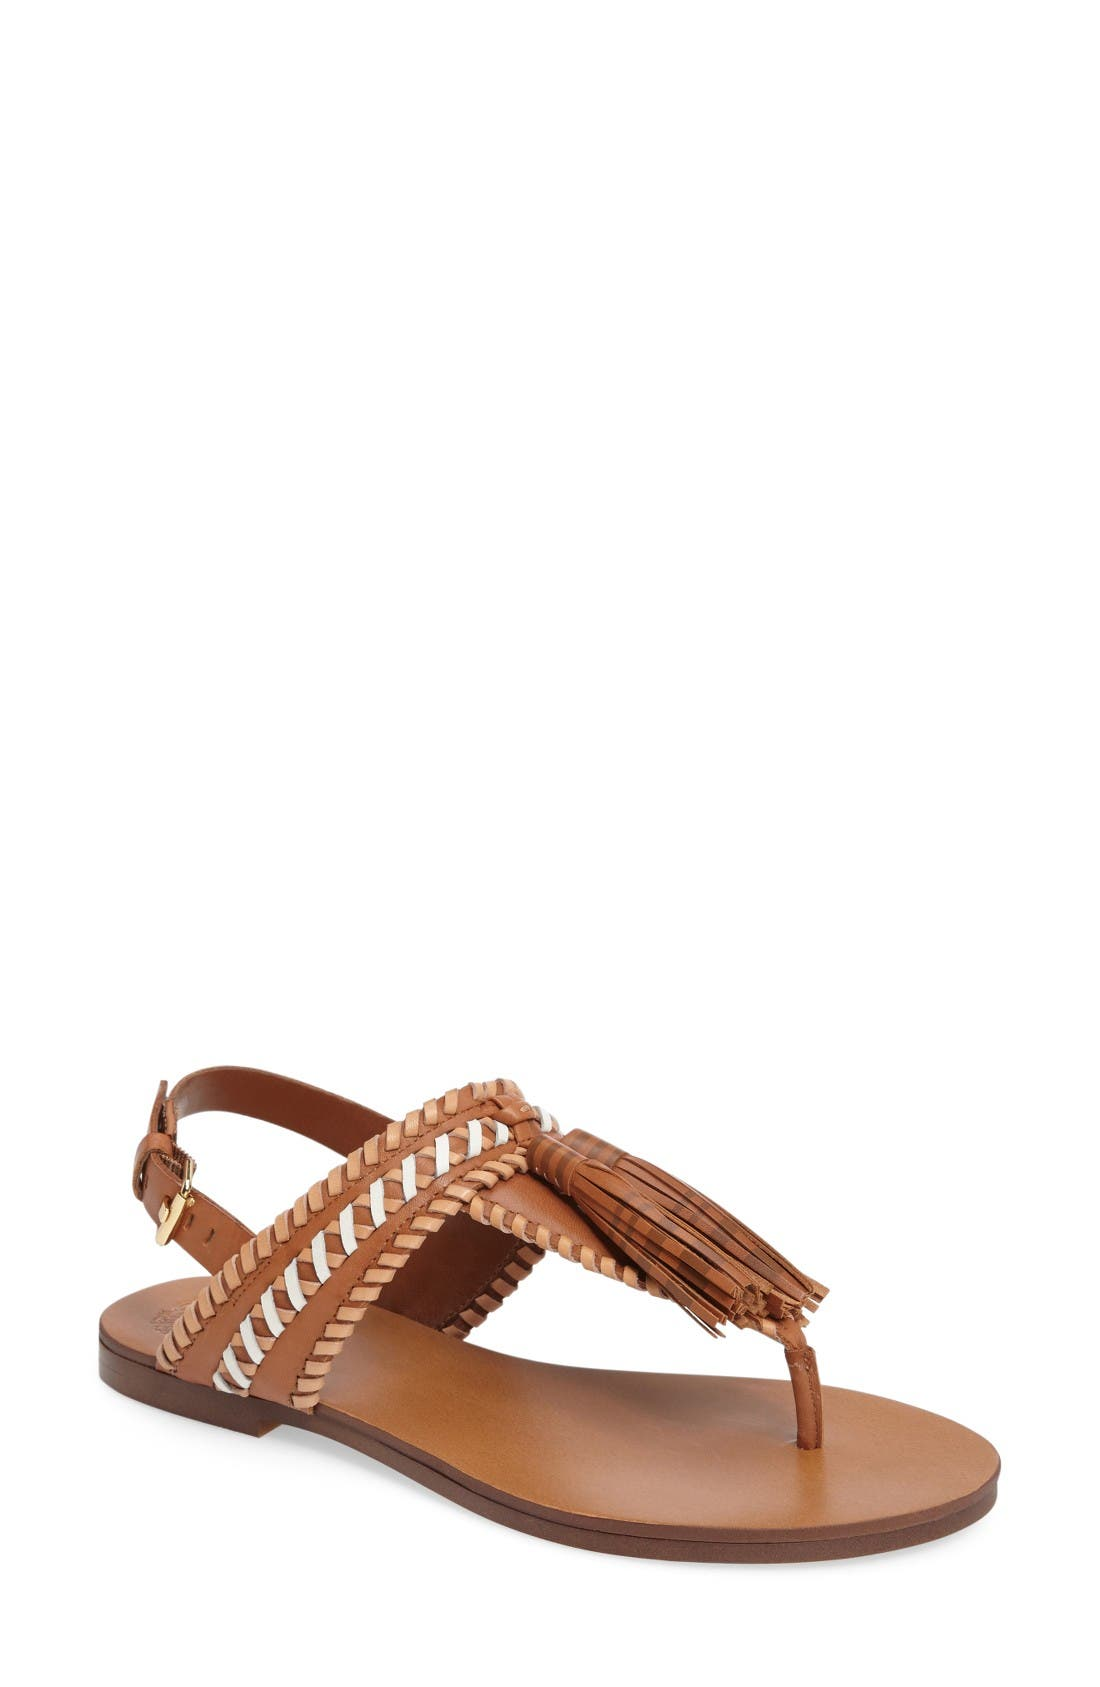 Rebeka Sandal,                         Main,                         color, Whiskey Bar Leather